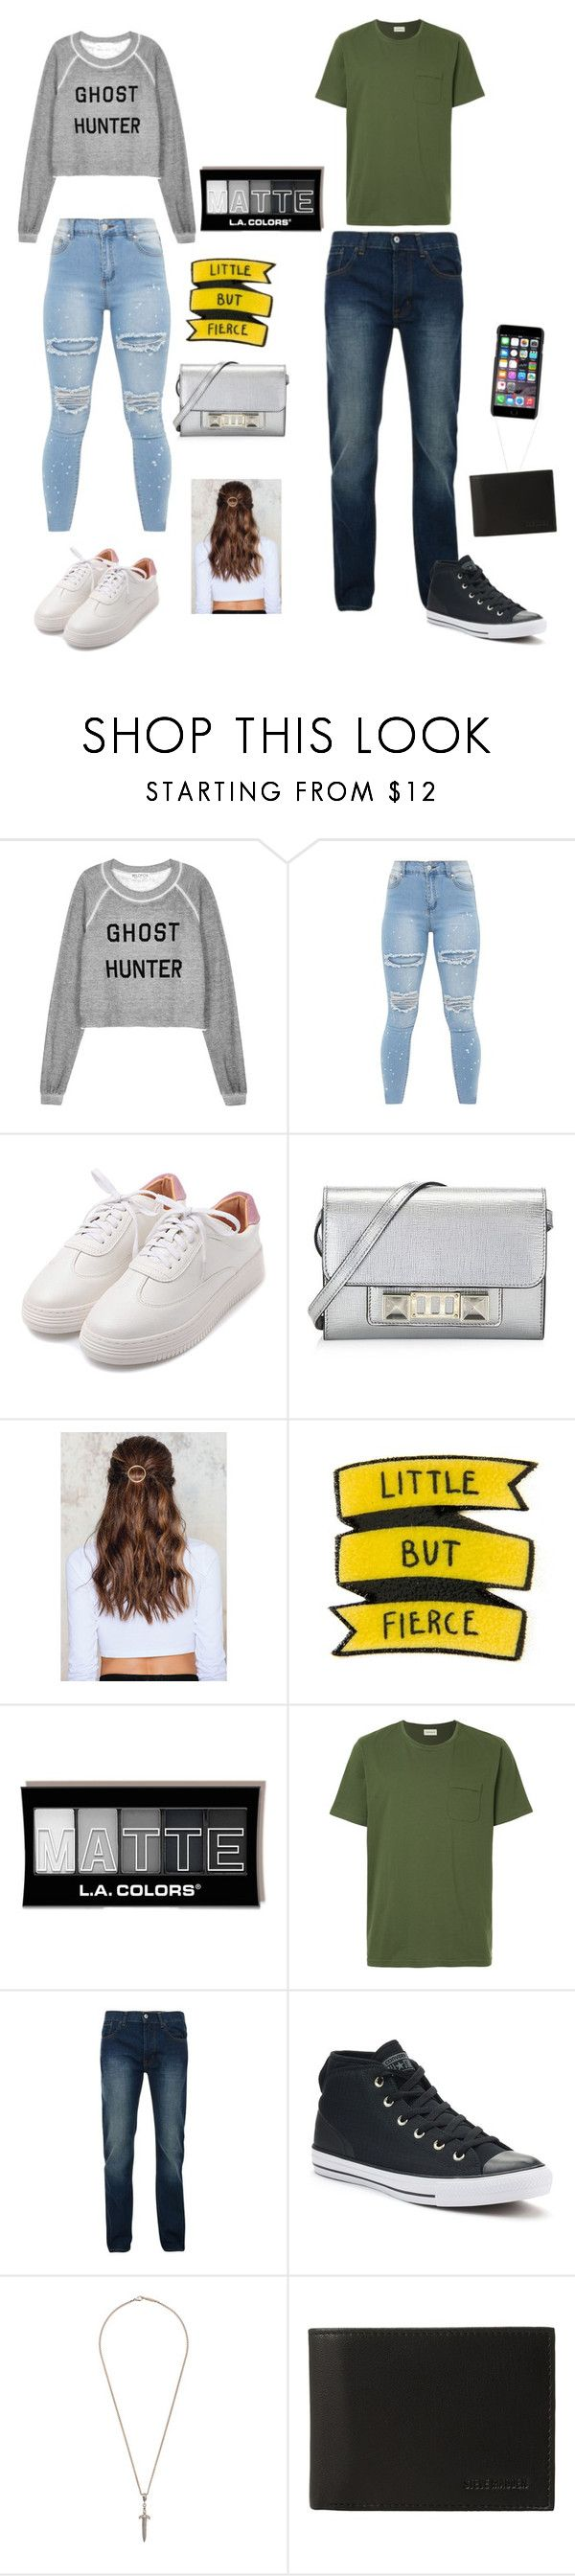 """Untitled #135"" by jocelineramirez ❤ liked on Polyvore featuring Wildfox, Proenza Schouler, NA-KD, Oliver Spencer, Bellfield, Converse, Roman Paul, Steve Madden and Dolce&Gabbana"